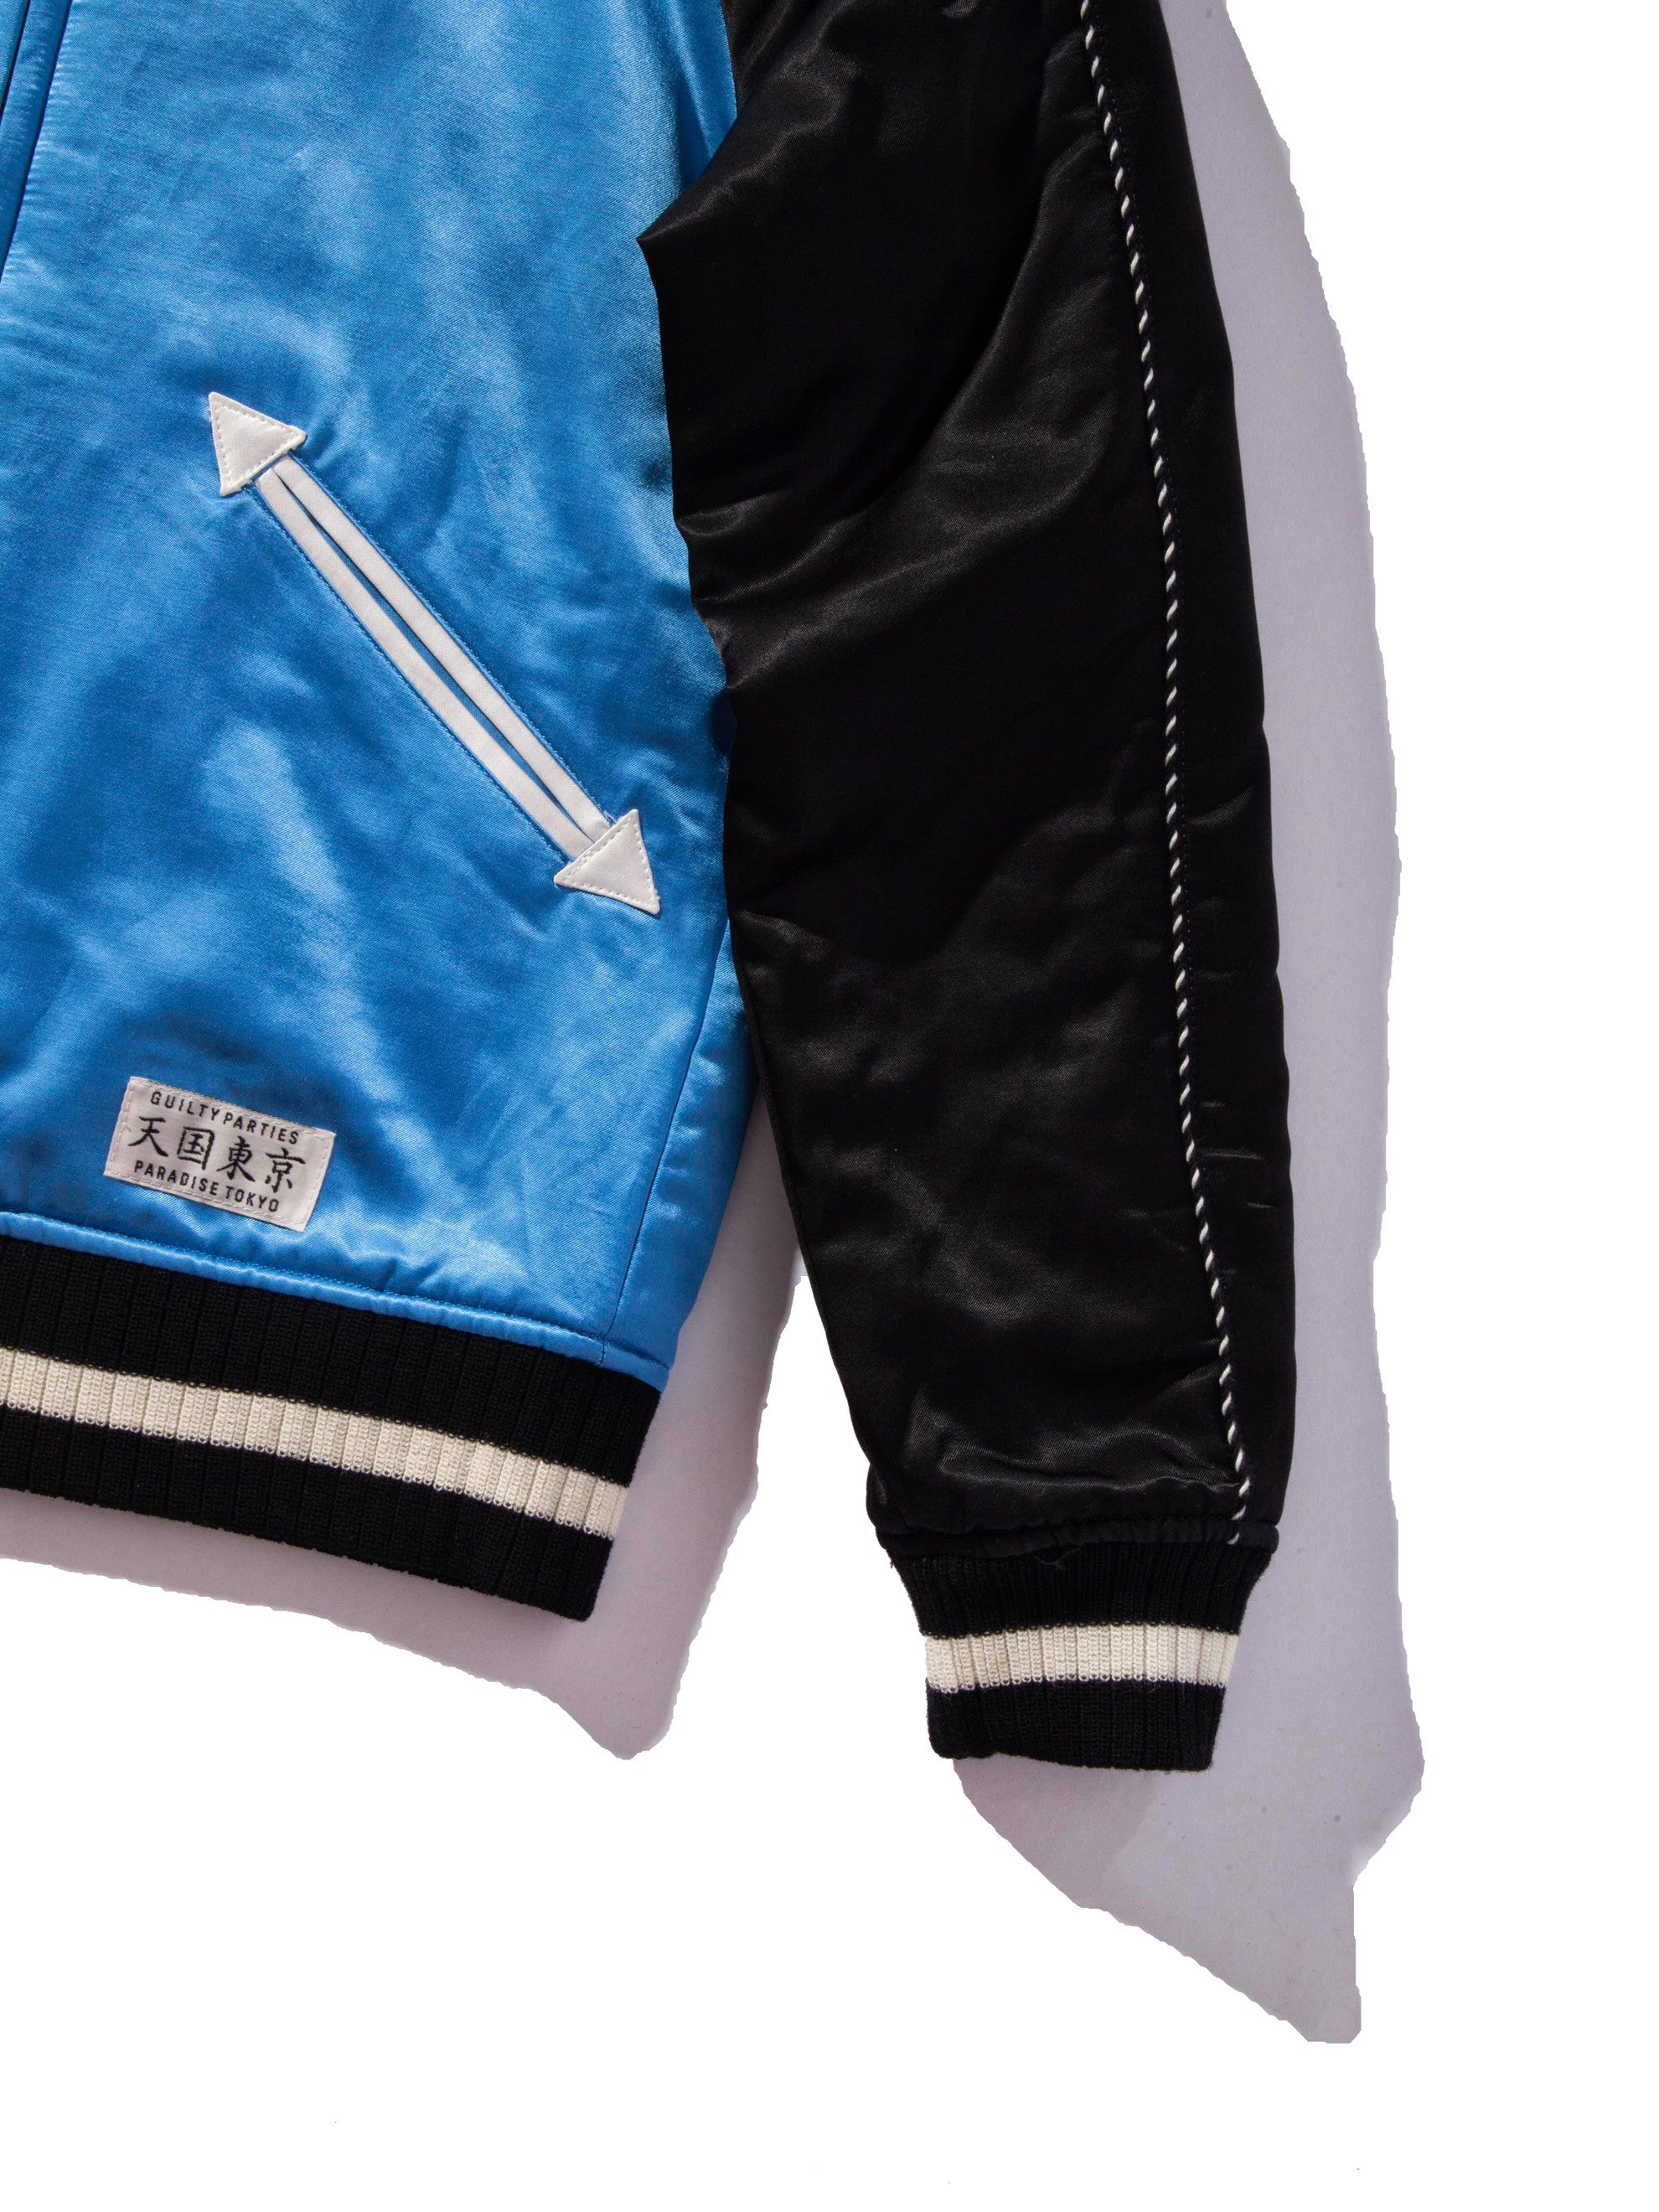 Blue/Black Souvenior Jacket 12